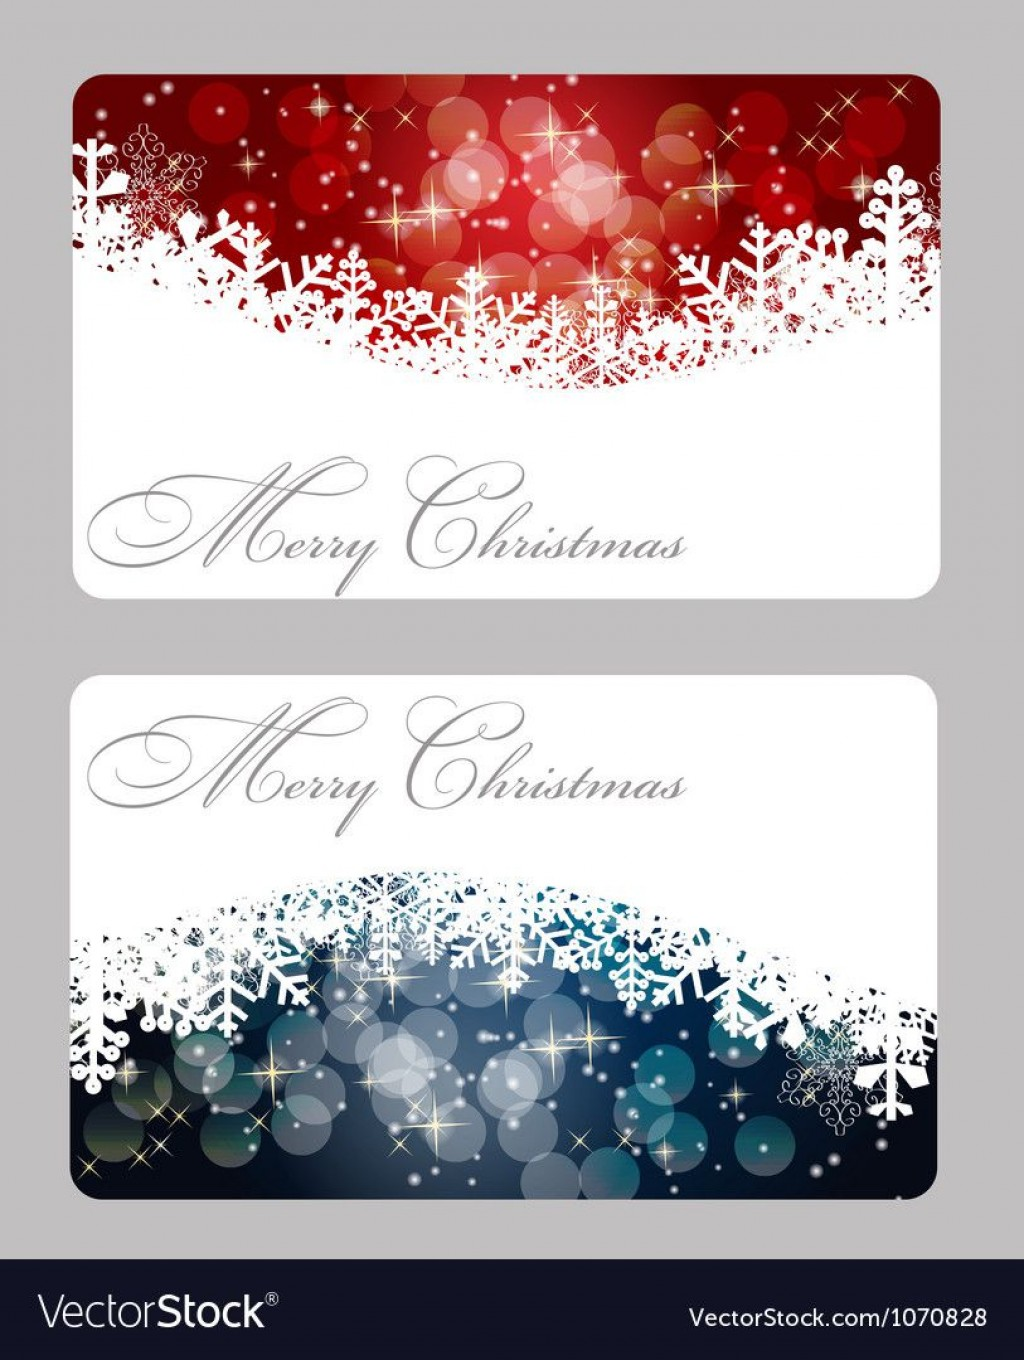 009 Dreaded Christma Card Template Free Download Idea  Downloads Photoshop Photo EditableLarge